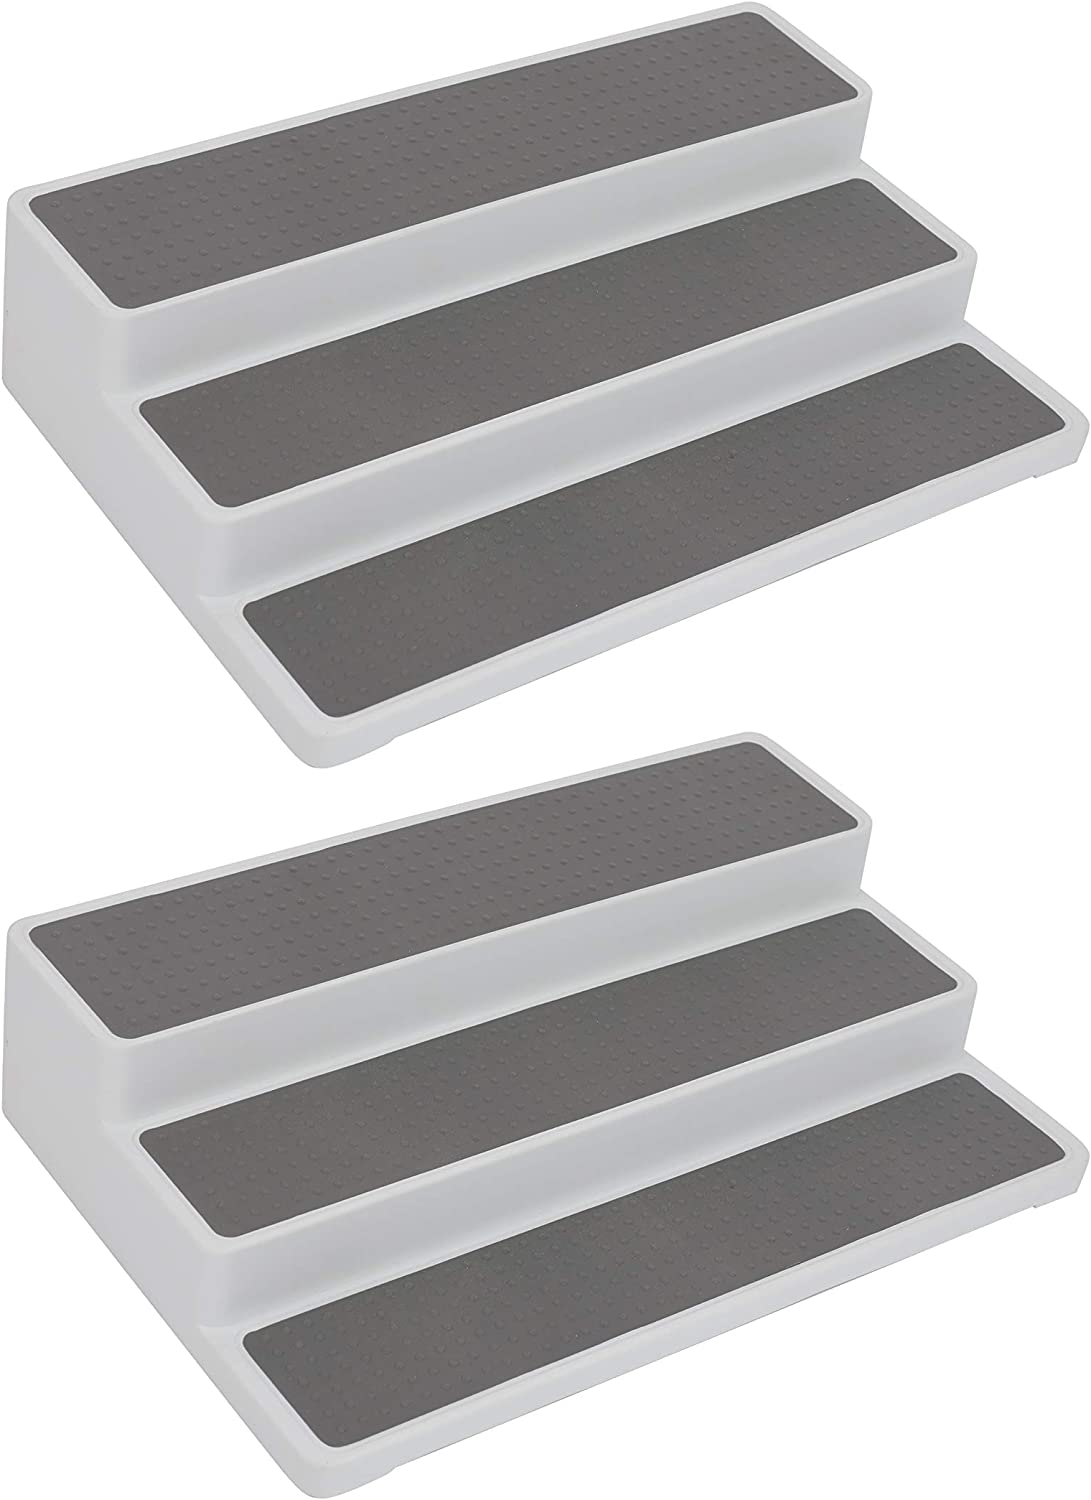 A Latte Joy Spice Rack Organizer for Pantry, Cabinet or Countertop Stand 3 Step Shelf, 2-pack 3-Tier, 14.5-Inch, White/Gray, Waterproof, Non-skid